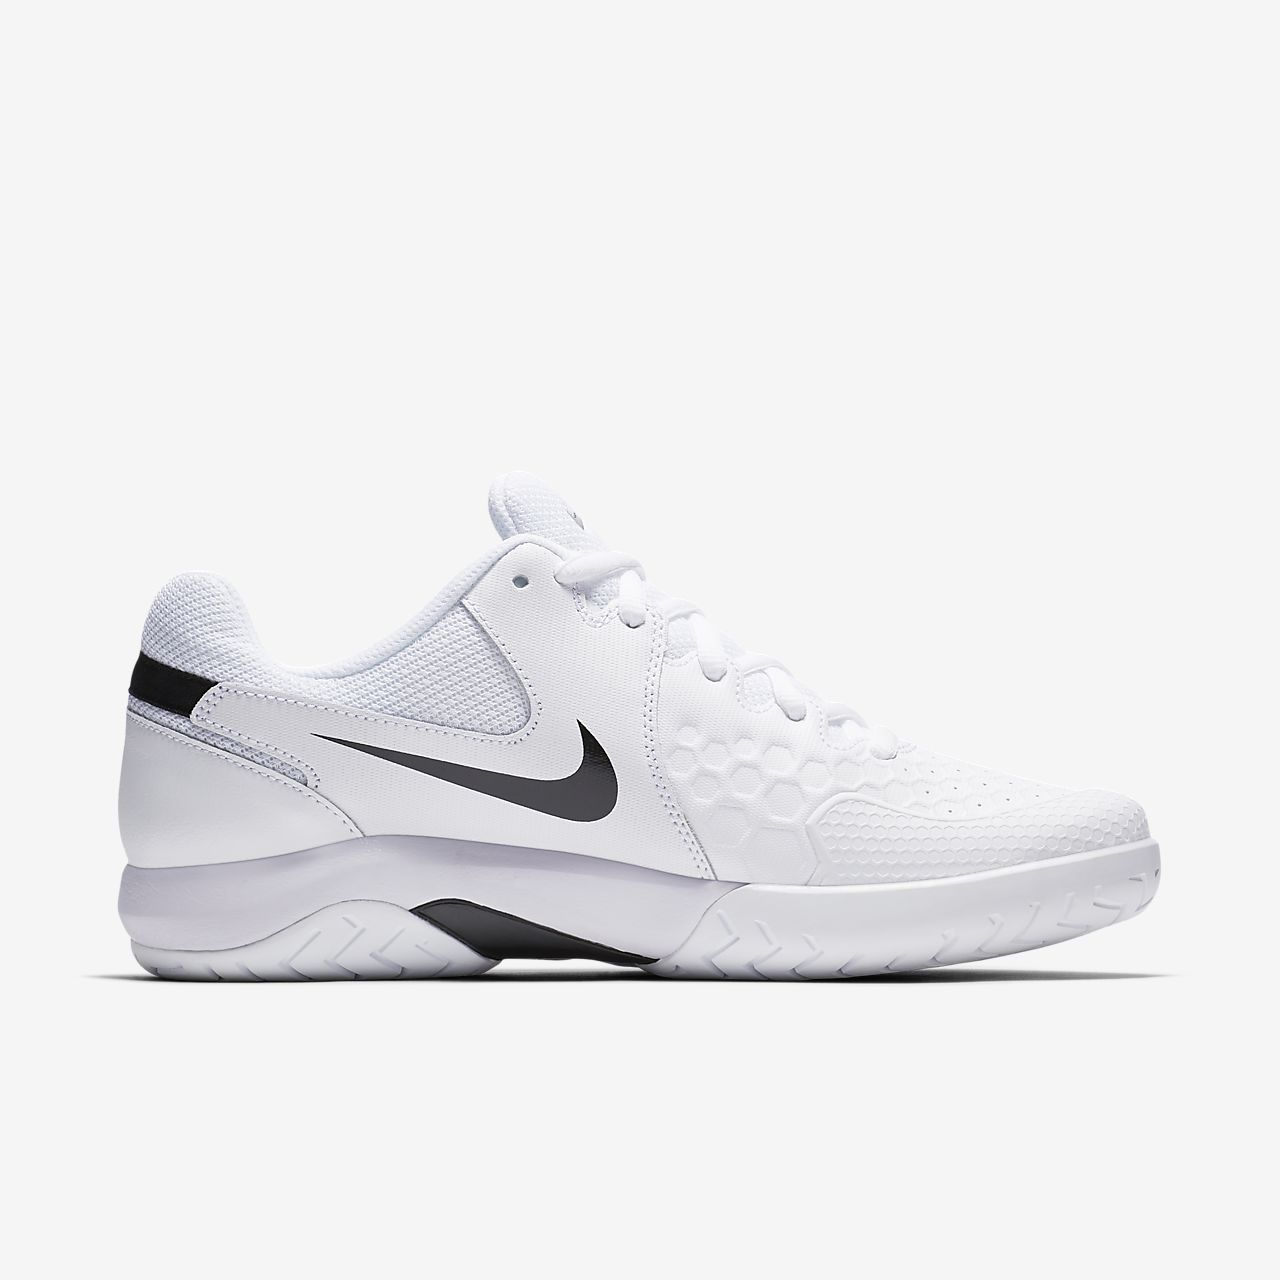 75e5f232781 nikecourt-air-zoom-resistance-hard-court-tennis-shoe-rJTGAGEP.jpg